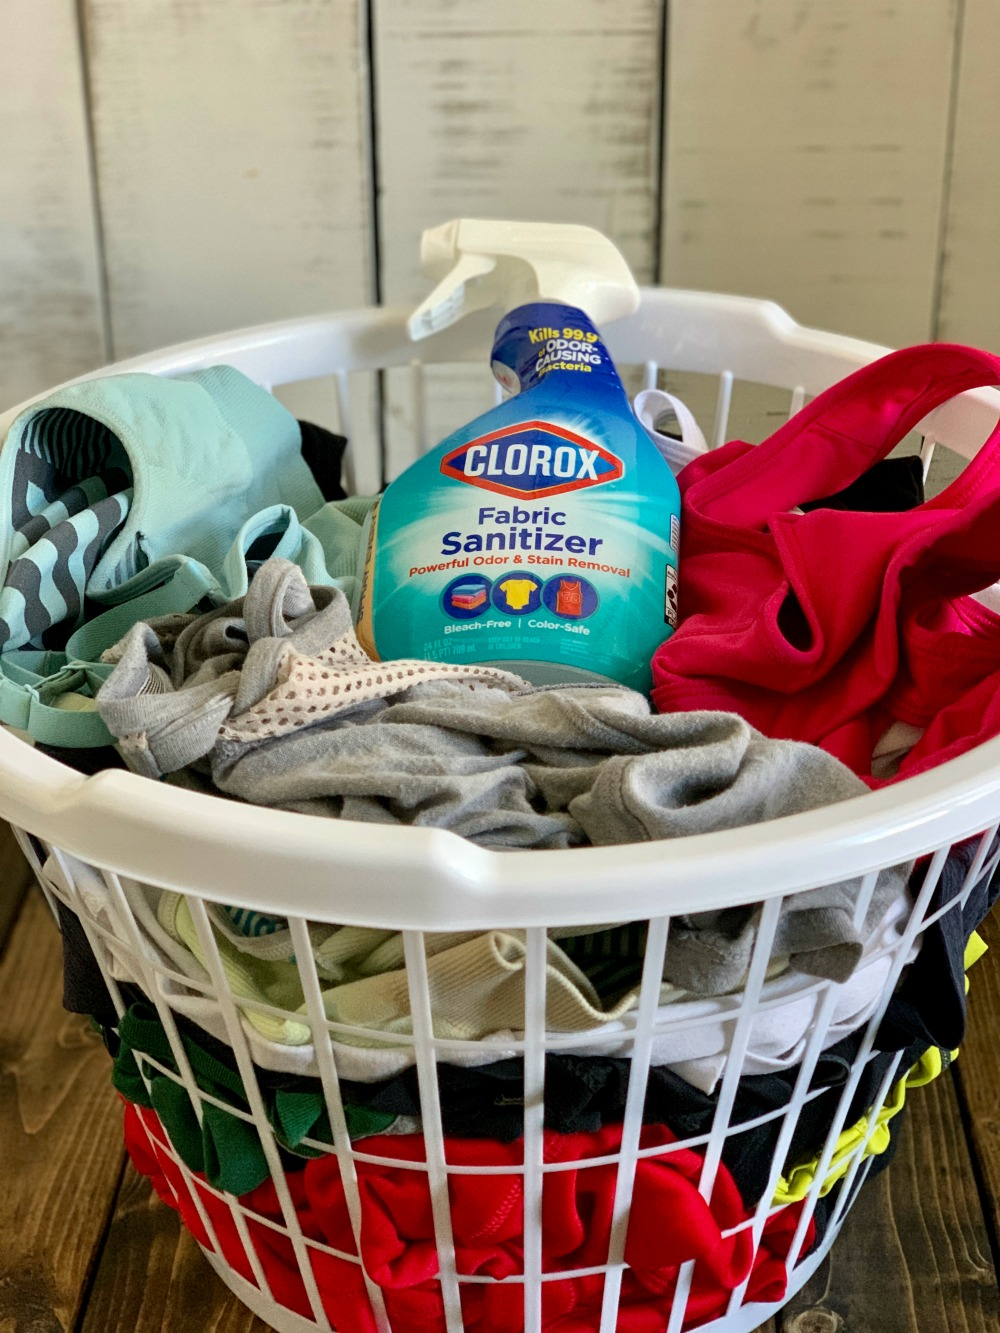 white laundry basket full of dirty clothes and Clorox Fabric Sanitizer